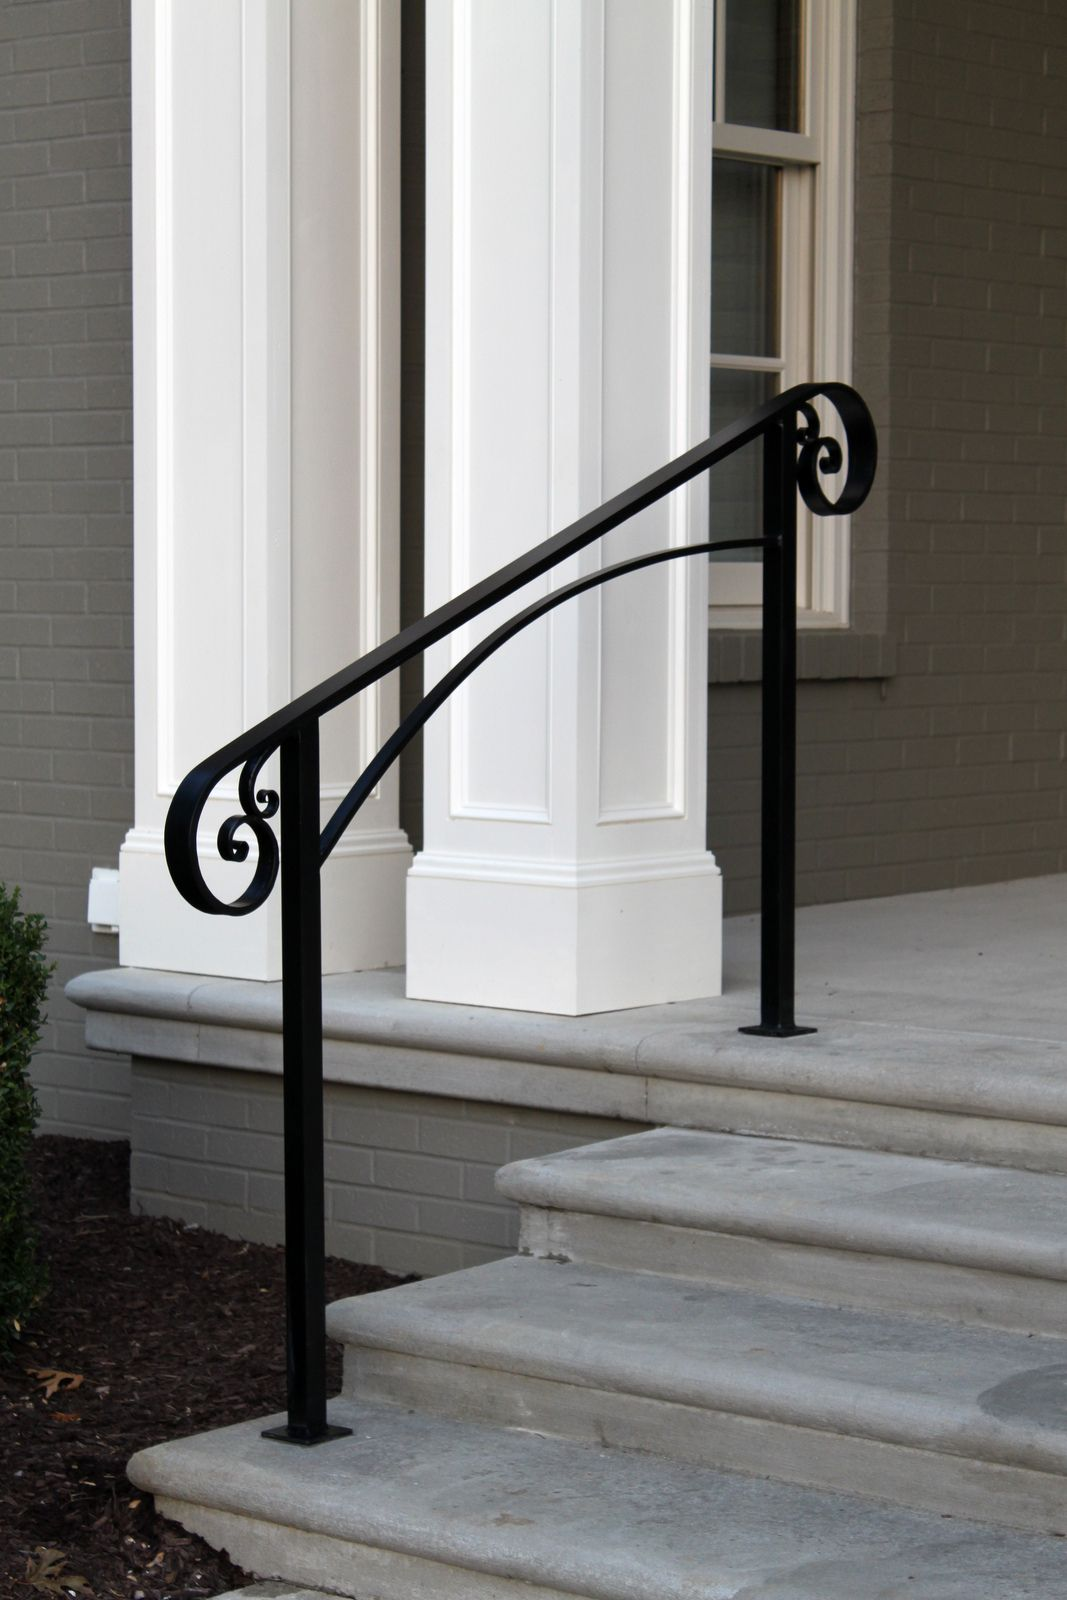 Best Installation 9 9 13 Powder Coating In Matte Black Over Hand Forged Aluminum In 2019 Porch 400 x 300